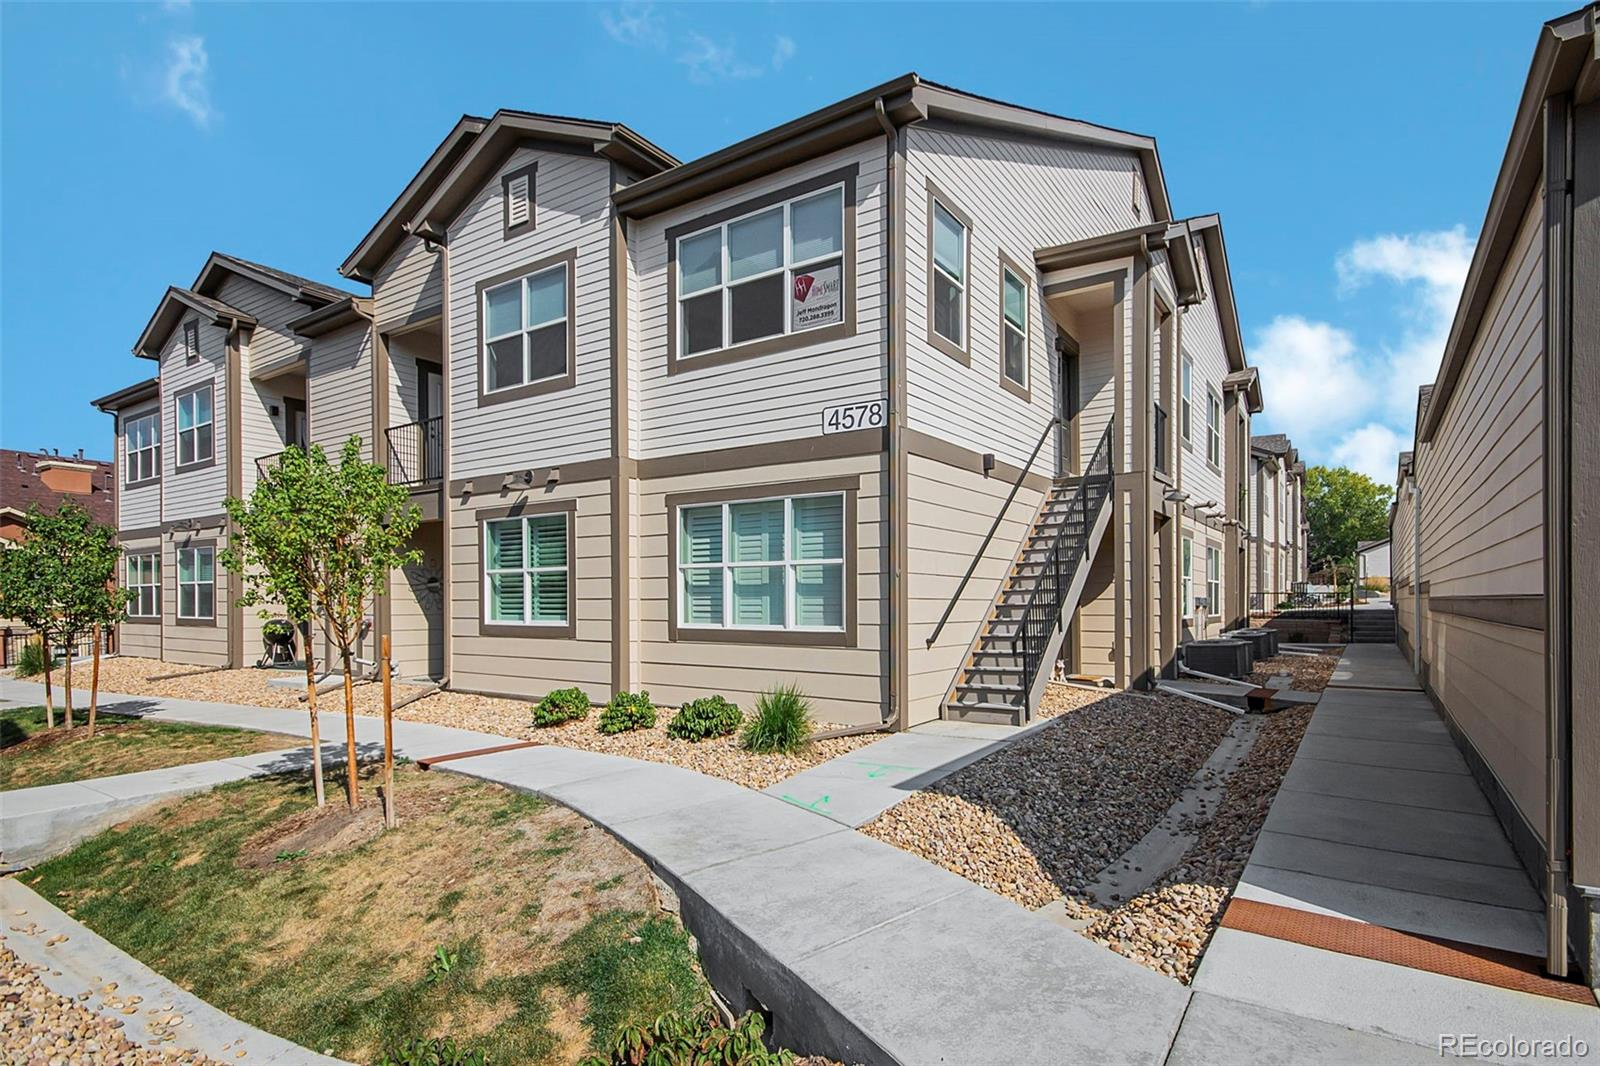 Stunning, Move-in ready, Copeland Canyon Condo. Only 1 year old! This property features a great open floor plan with 2 bedrooms and 2 bathrooms. Beautiful flooring throughout, high ceilings, and a private balcony with storage! Fantastic open kitchen with granite countertops, stainless steel appliances, and kitchen sink with a single pull faucet. Matching bronze features throughout. Large island with seating overlooking the dining area and family room.  Master Suite with private bath and large walk-in closet, plus a second bedroom and full bathroom. Detached garage and one dedicated parking space. Close to C-470, dog park, miles of biking trails, Park Meadows Mall, and tons of dining!